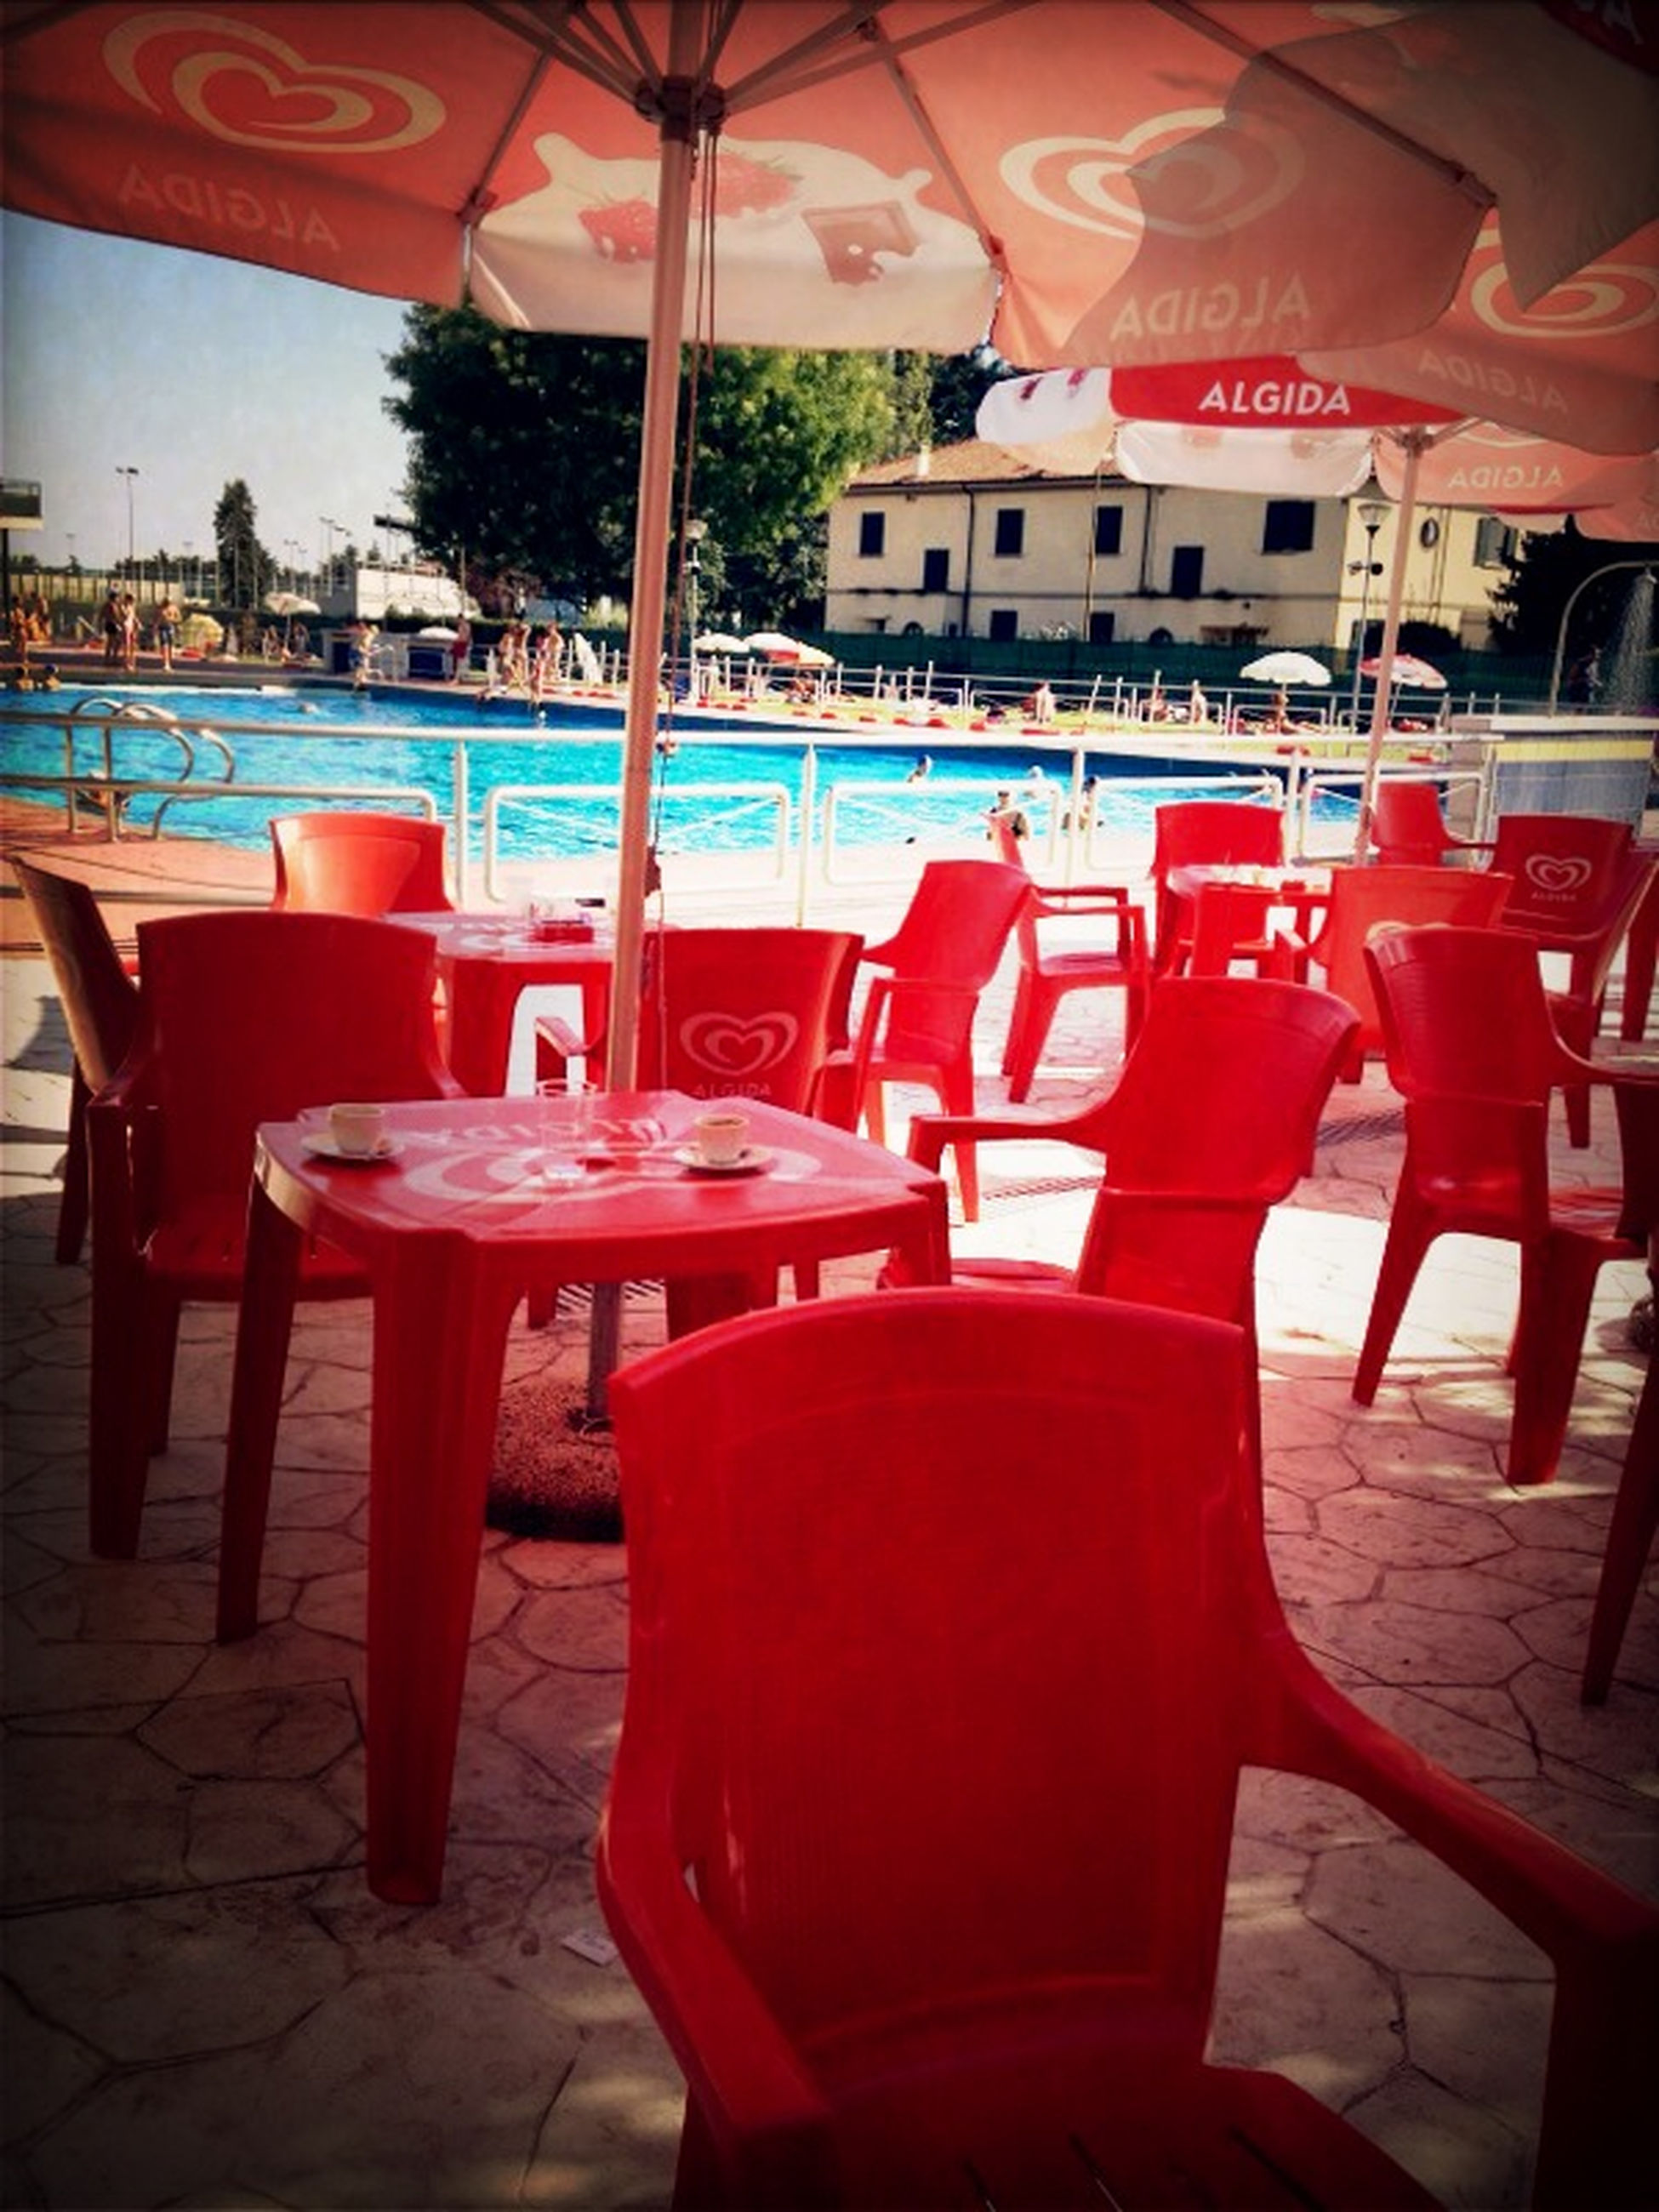 chair, red, empty, restaurant, table, seat, absence, built structure, architecture, sidewalk cafe, cafe, sunlight, incidental people, indoors, water, day, sea, furniture, no people